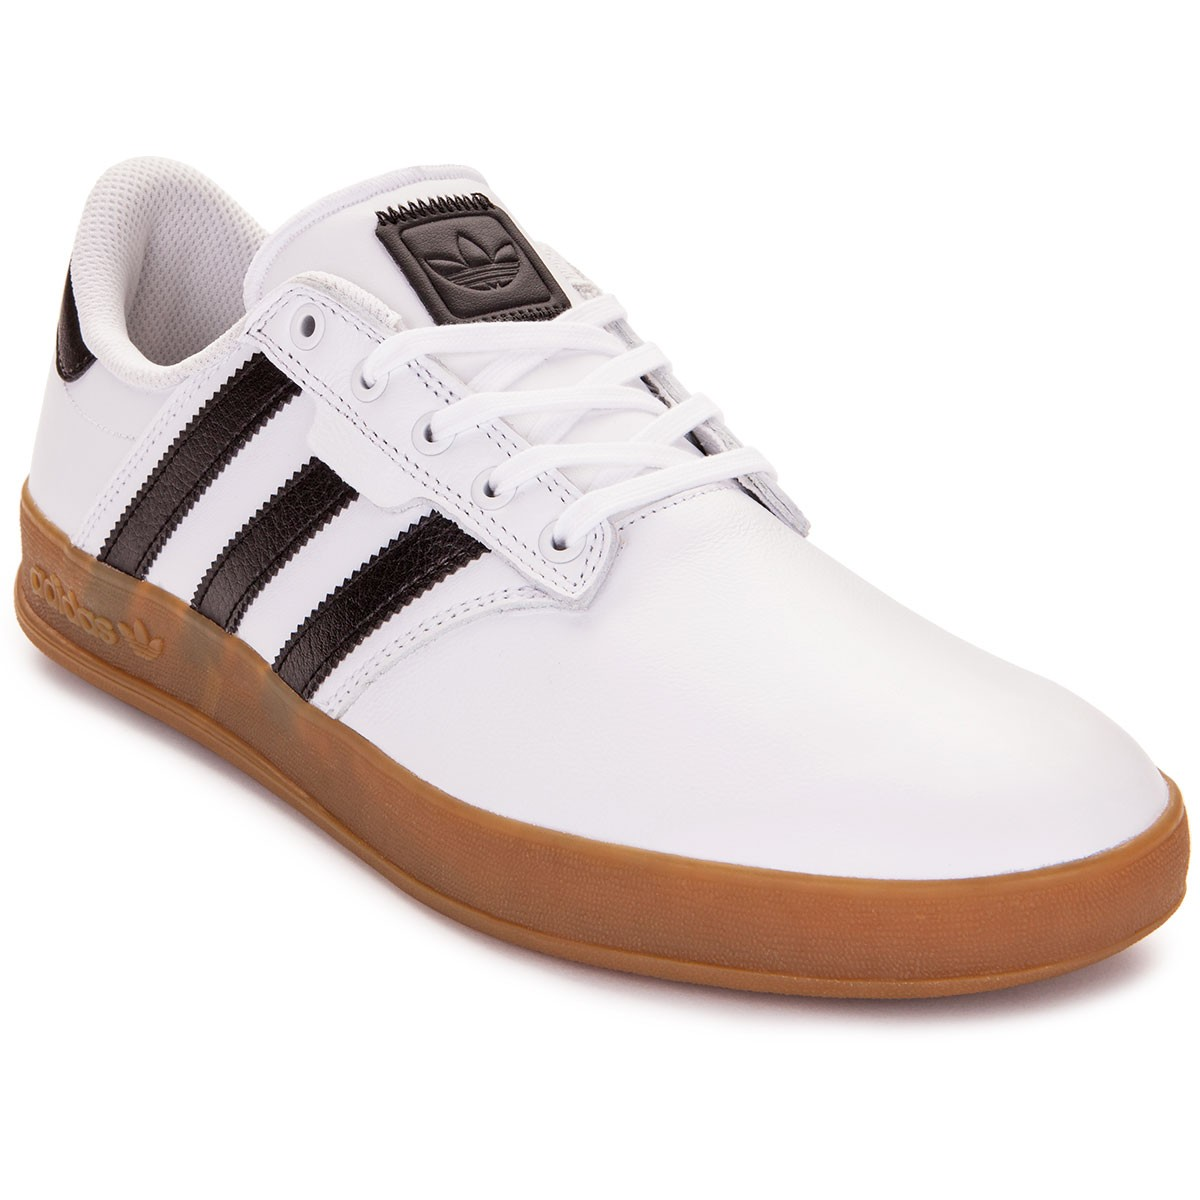 Adidas White Canvas Shoes Women